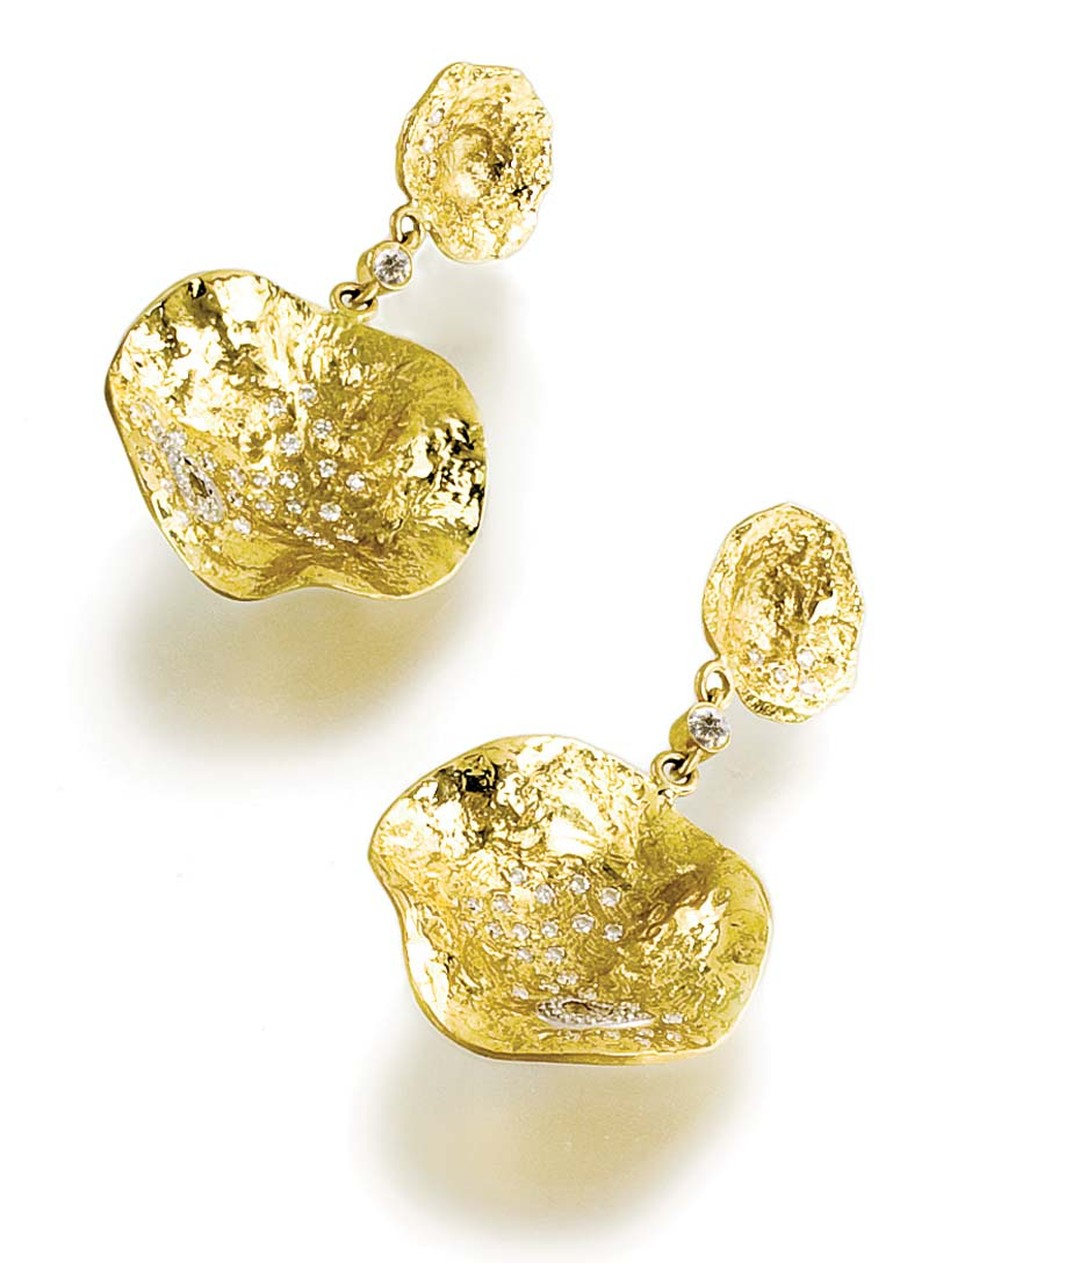 Coomi Serenity gold earrings with diamonds.